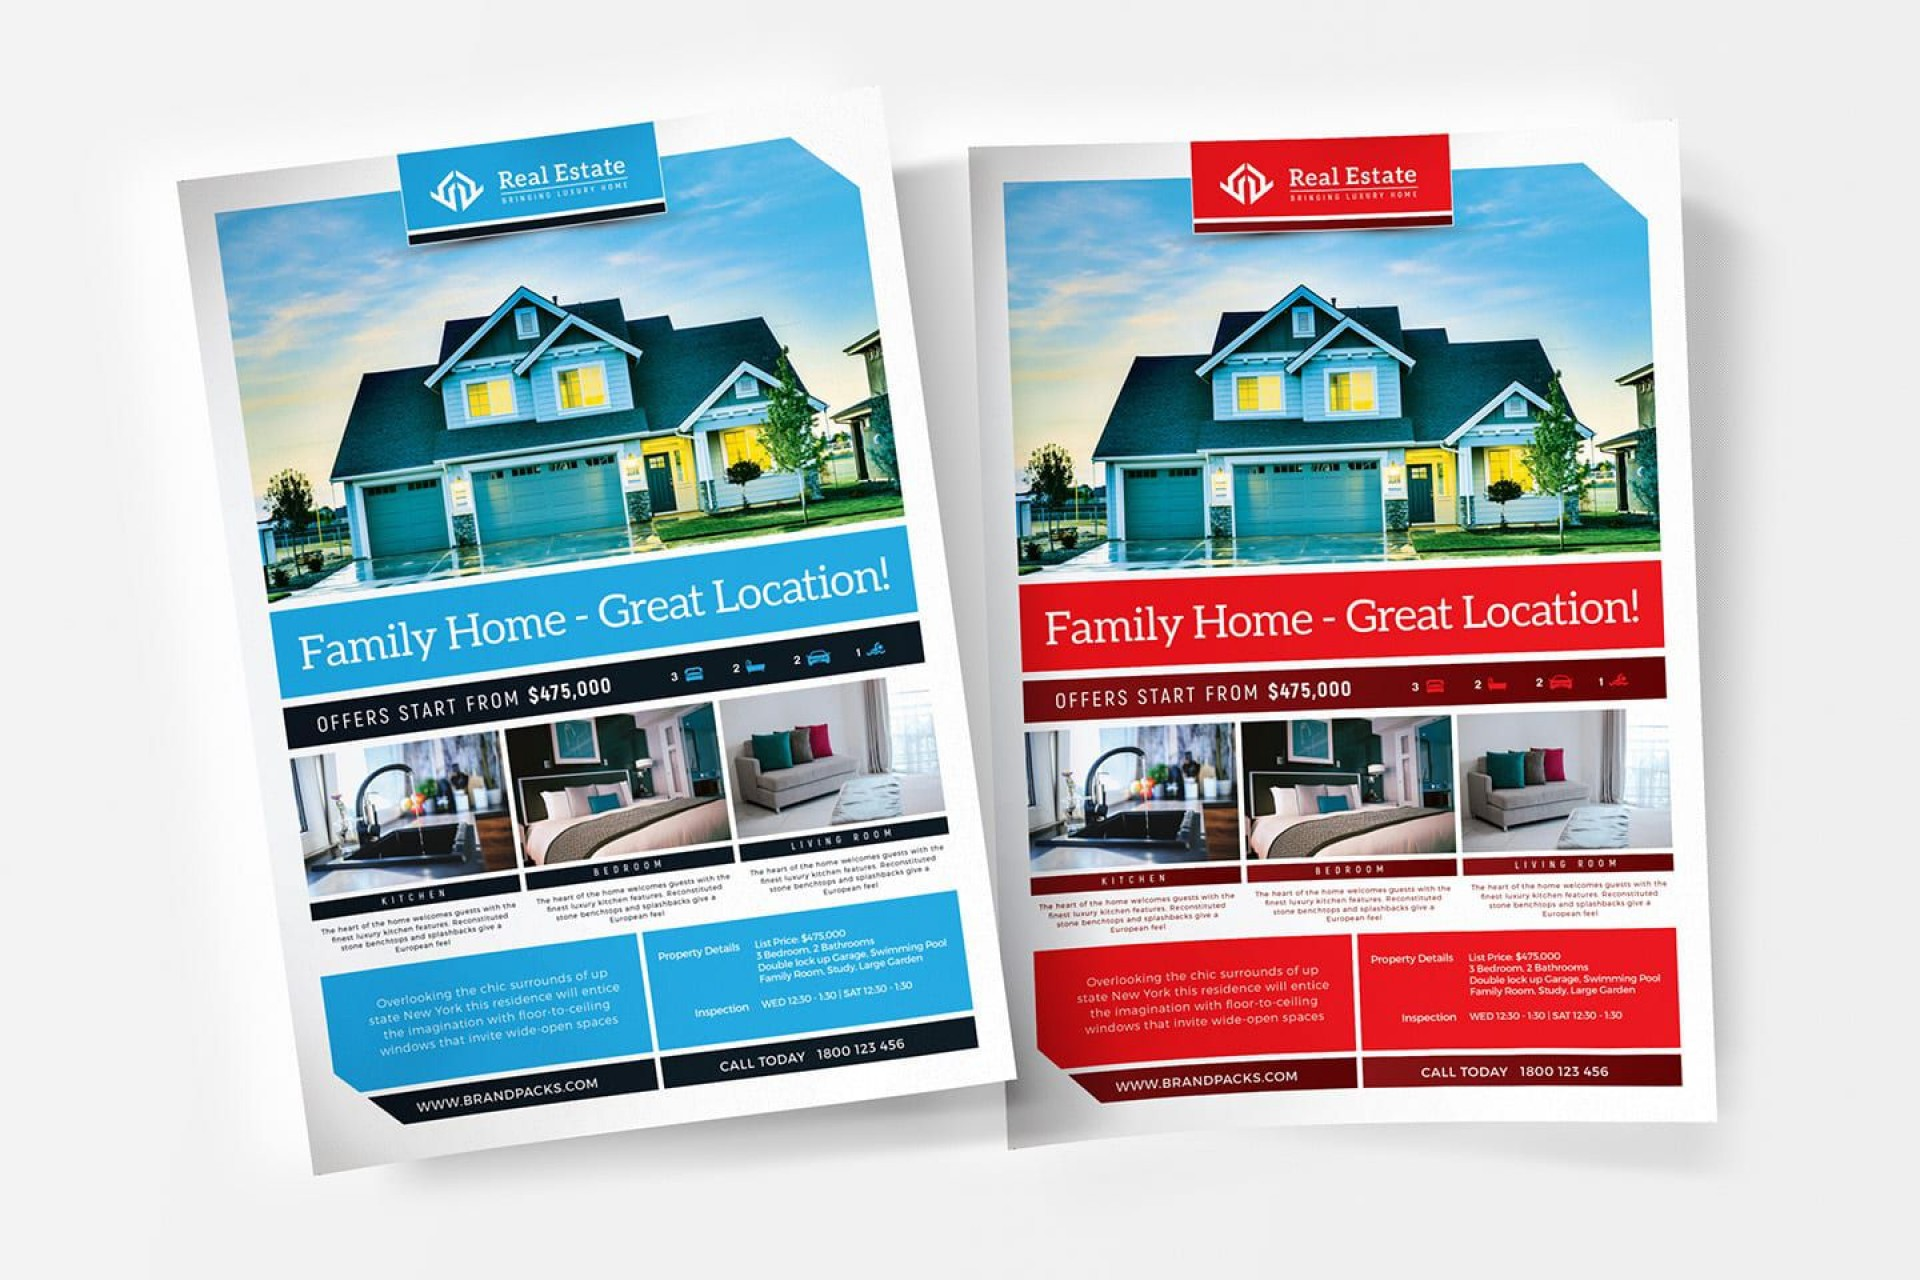 003 Wonderful Real Estate Flyer Template Free Inspiration  Publisher Commercial Pdf Download1920